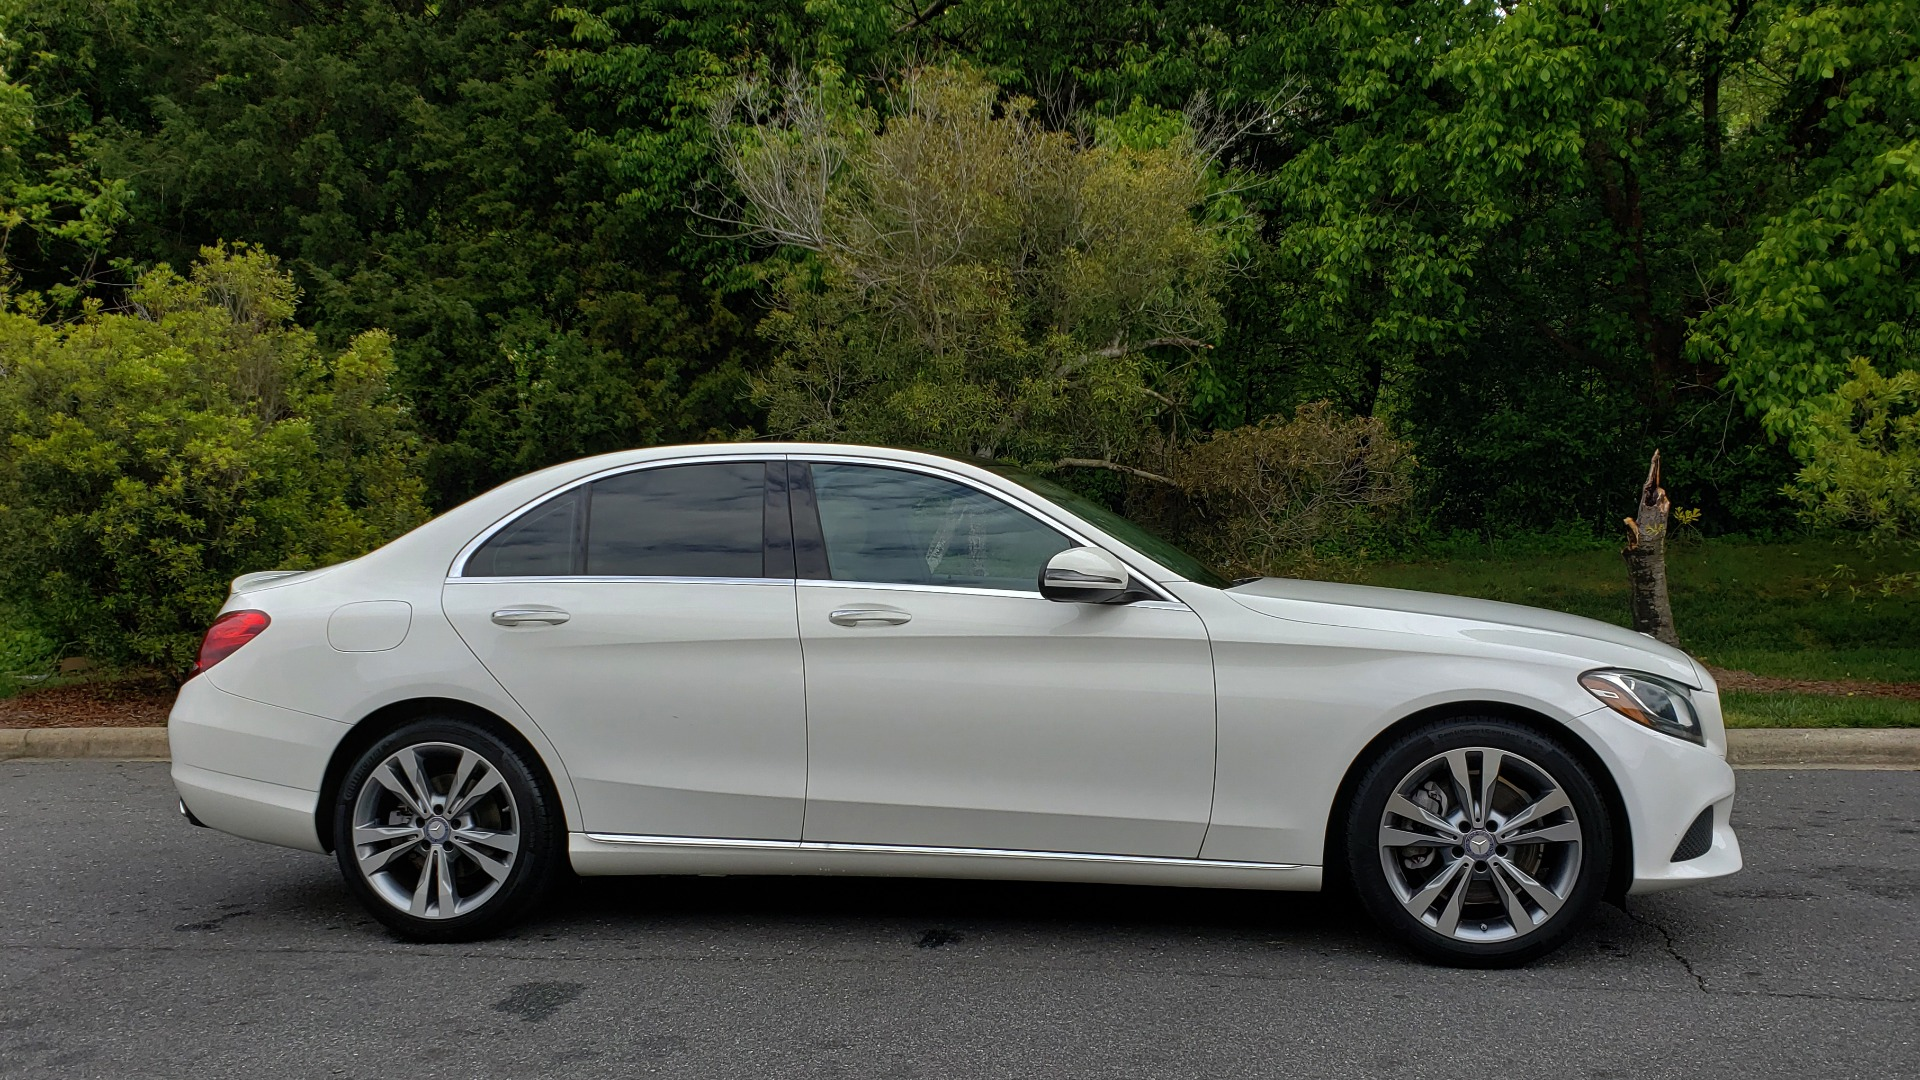 Used 2017 Mercedes-Benz C-Class C 300 PREMIUM / NAV / PANO-ROOF / HTD STS / REARVIEW for sale Sold at Formula Imports in Charlotte NC 28227 5